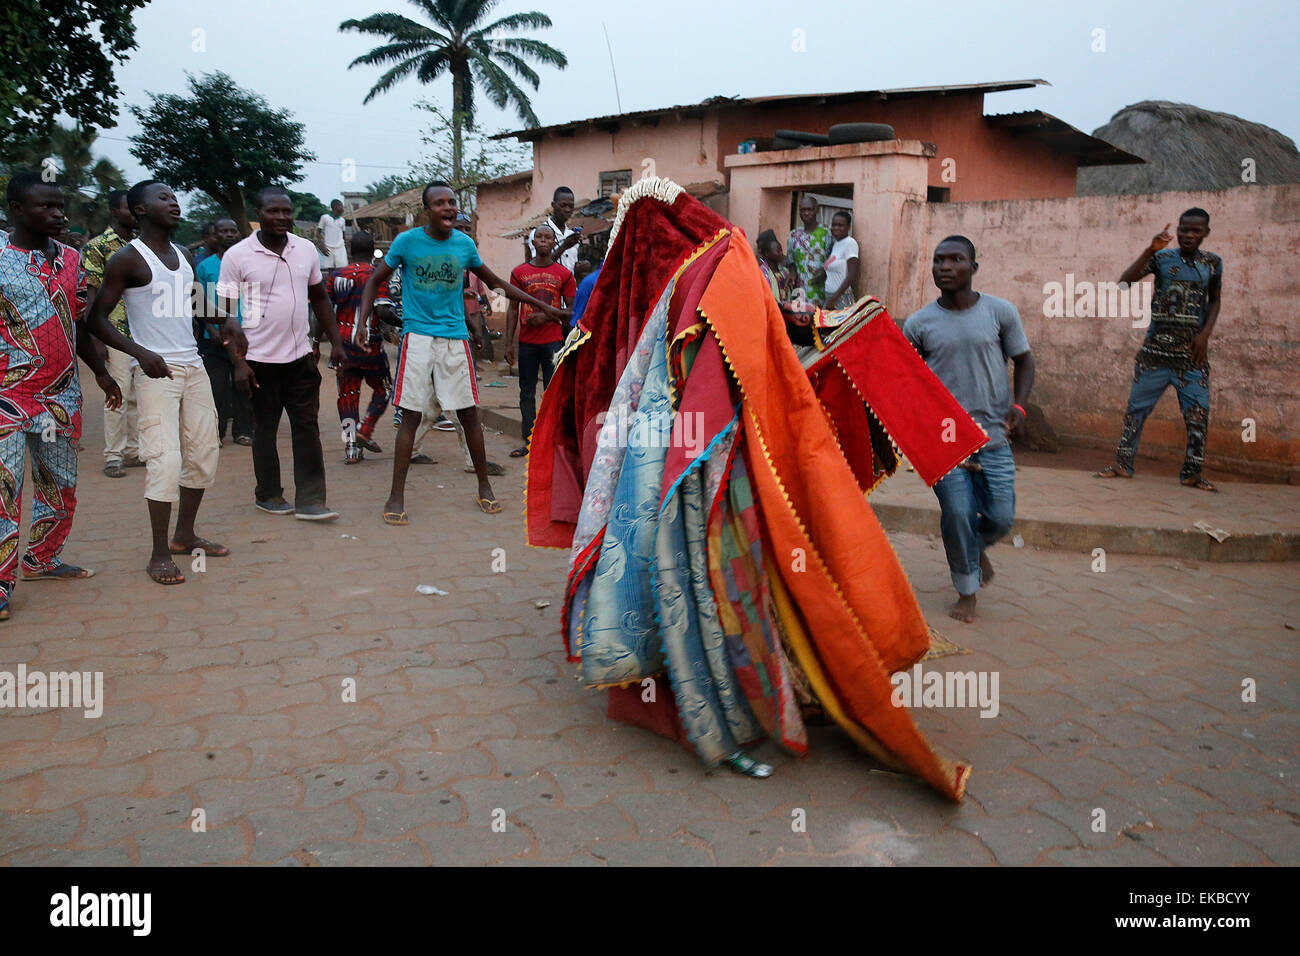 People keeping their distance as it's dangerous to touch the egoun-egoun, Feast of the Ghosts in Ouidah, Benin - Stock Image